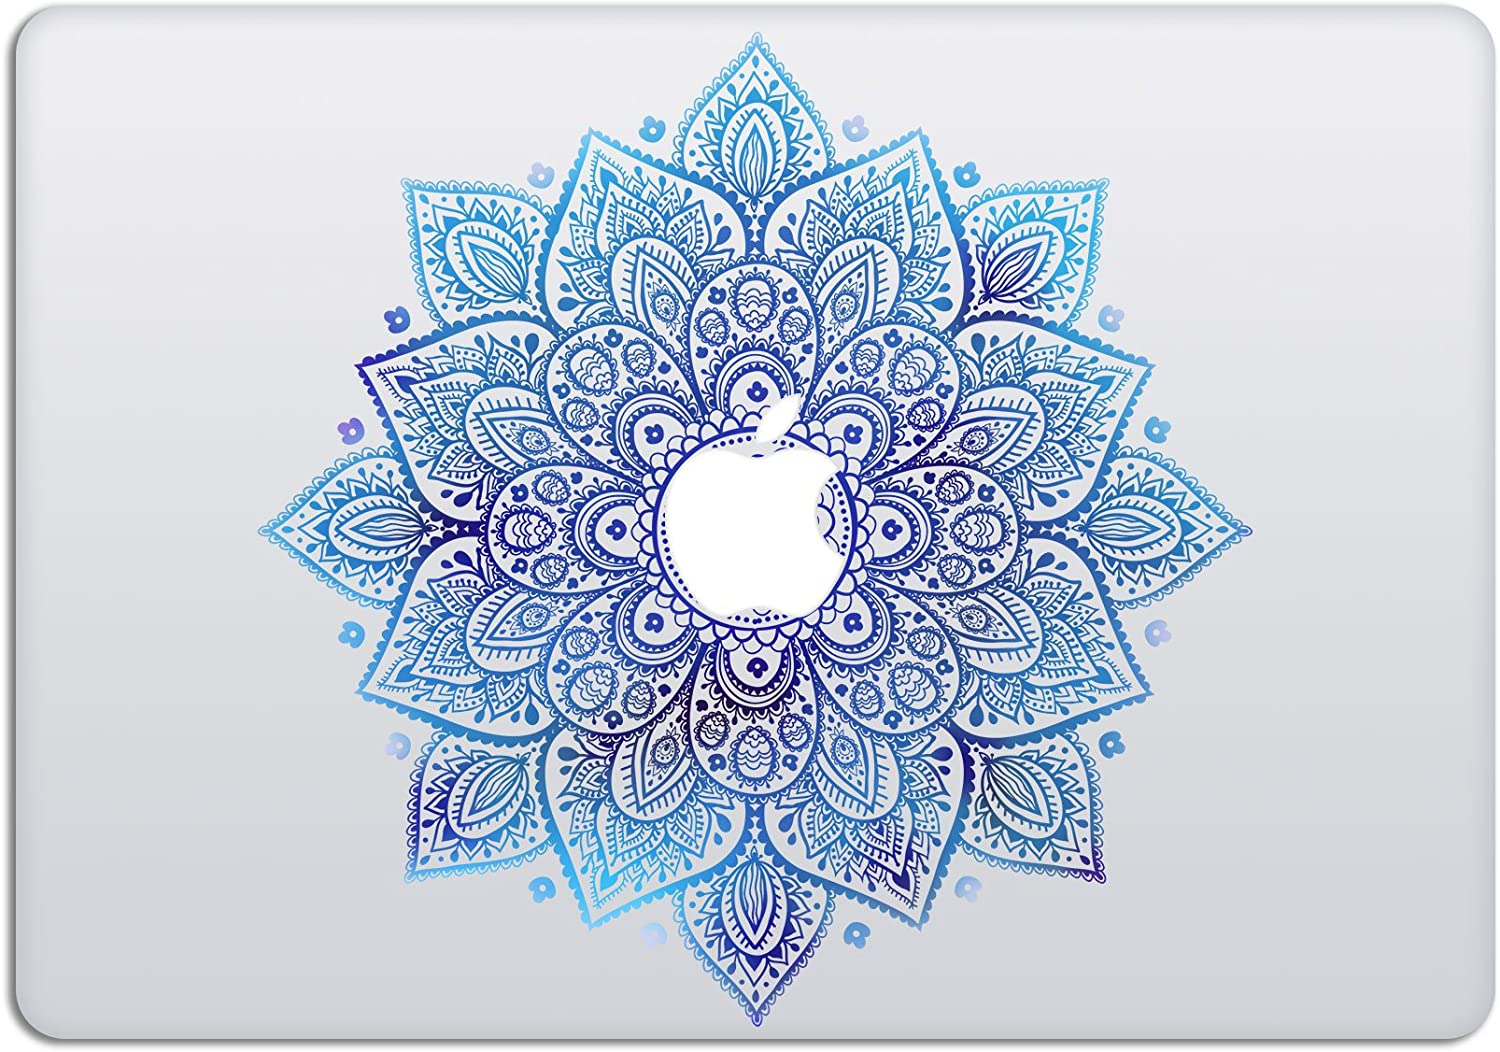 Laptop Stickers MacBook Decal - Removable Vinyl w/Glowing Apple Logo Diecut - Mandala Decal Blue Sticker Night Sky Skin for MacBook Air Pro 13 15 inch Mac Retina - Best Decorative Sticker by Artsybb